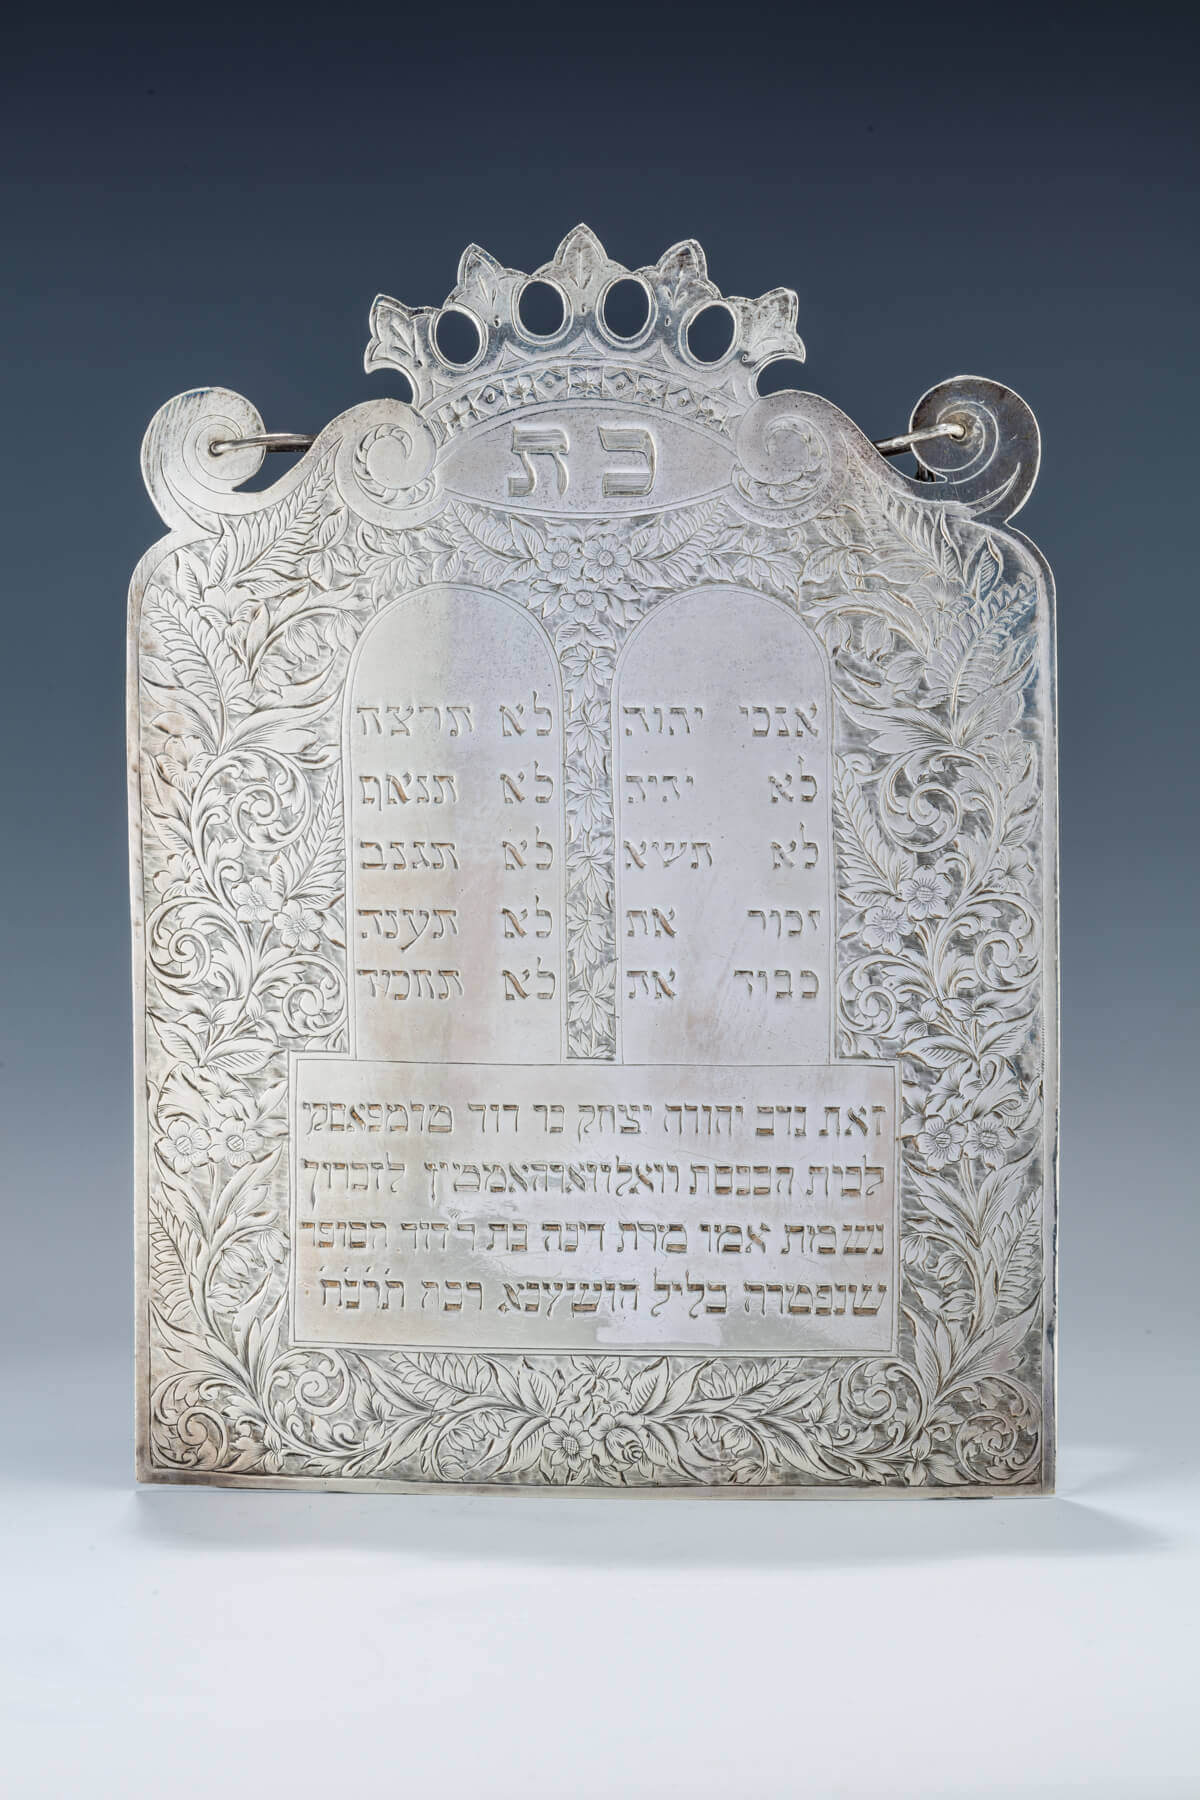 081. AN IMPORTANT SILVER TORAH SHIELD BY BARKER BROTHERS